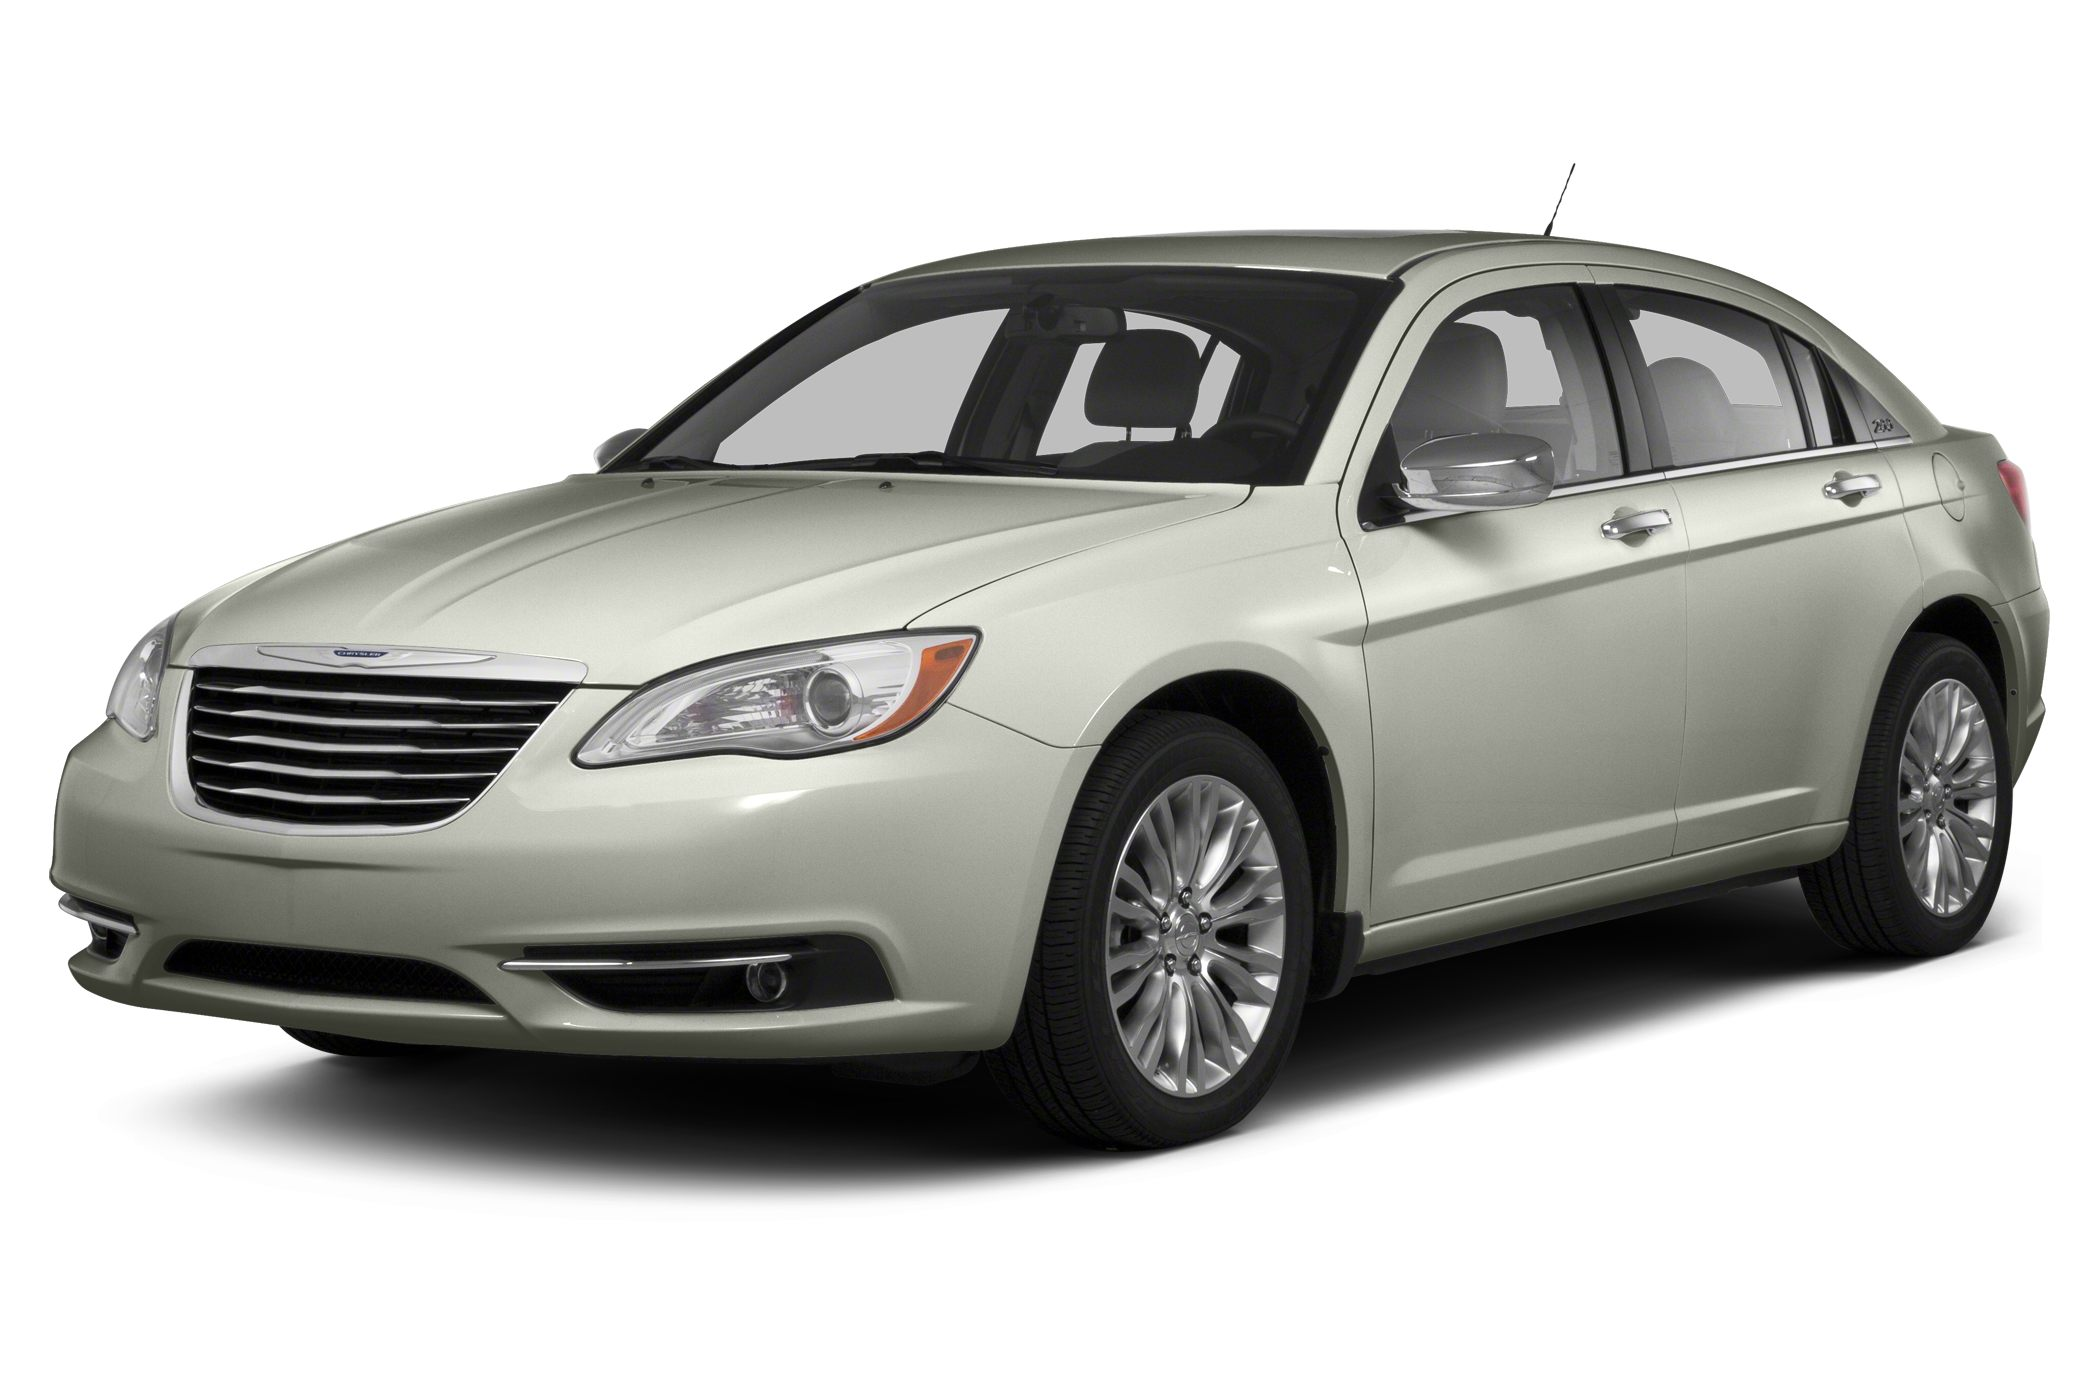 Chrysler 200: Lumbar Support — If Equipped